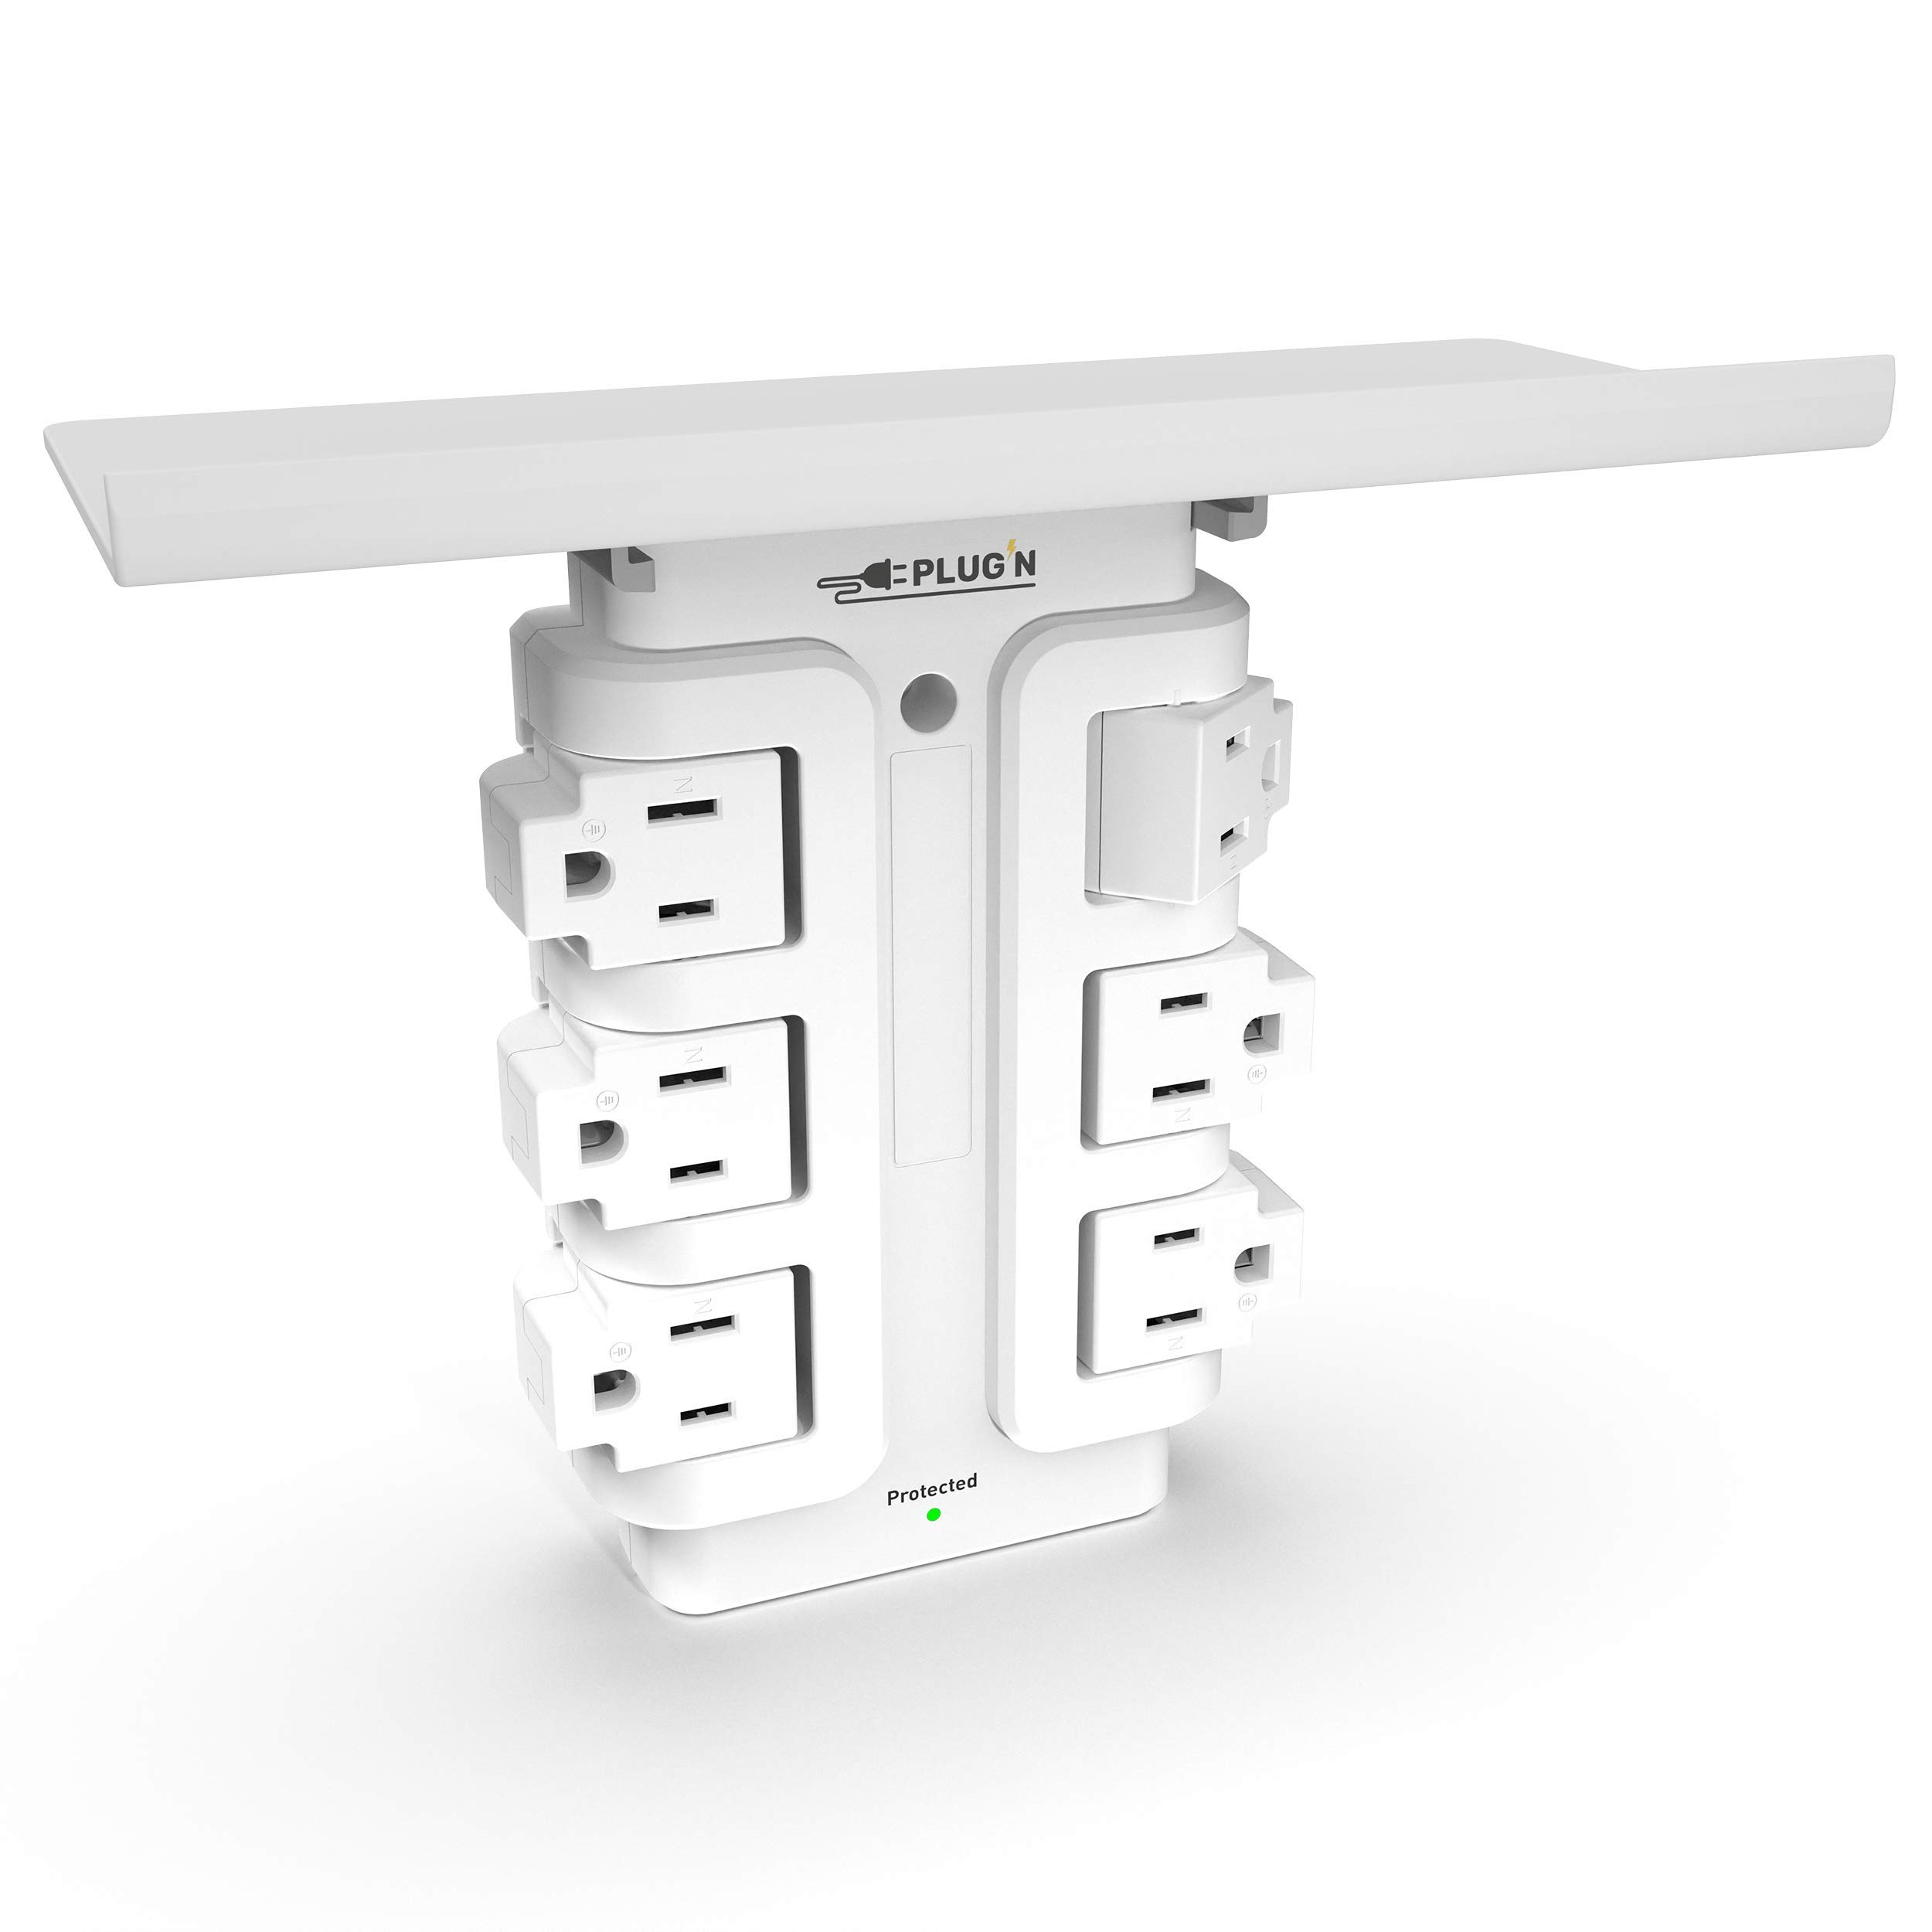 Premium 6 Outlet Rotating Wall Outlet Surge Protector (1020J), 15A, ETL Certified